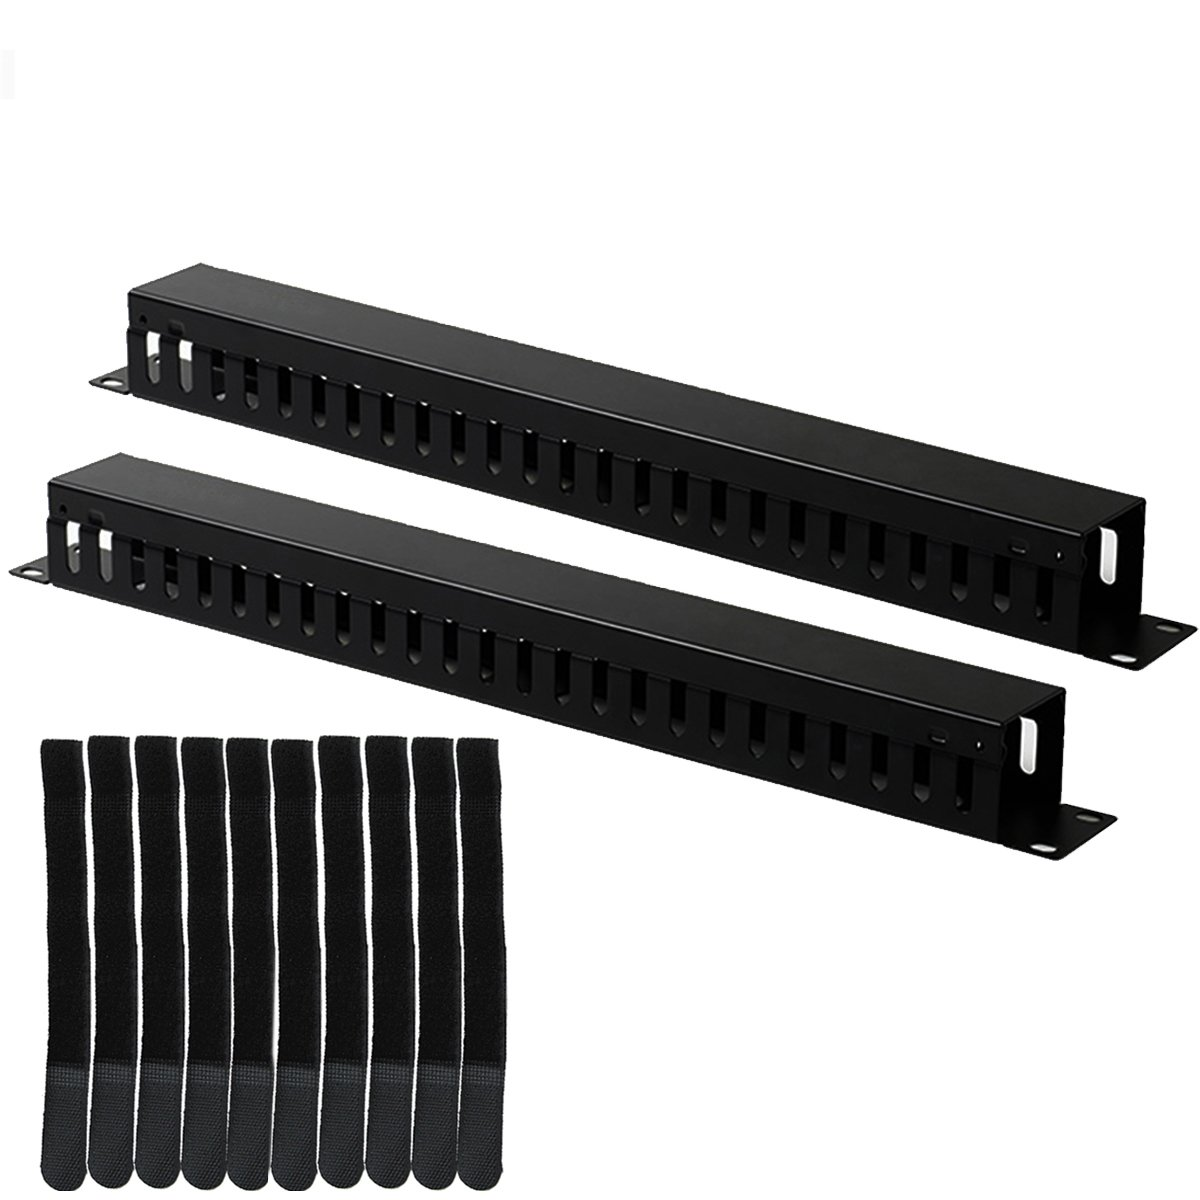 Lancher 2-Pack 19 Inch 1U Cable management Horizontal Cable Rack Mount manager with mounting screws for service rack cabinet 24 slot Finger Duct with Cover Lancher Co. LTD